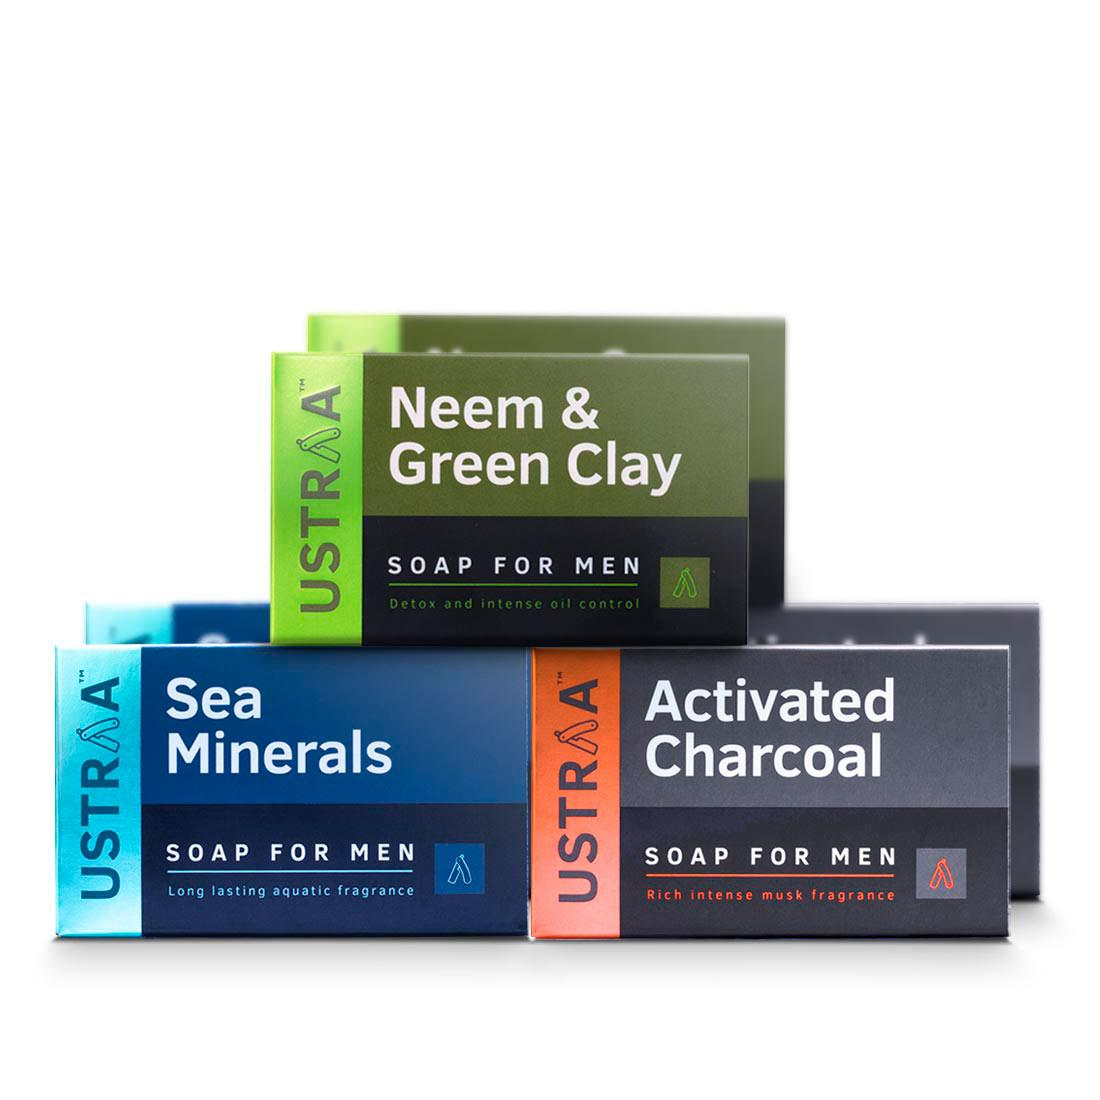 Ustraa Deo-Soap for Men (Pack of 6): With Sea Minerals, Activated Charcoal, Neem & Green Clay